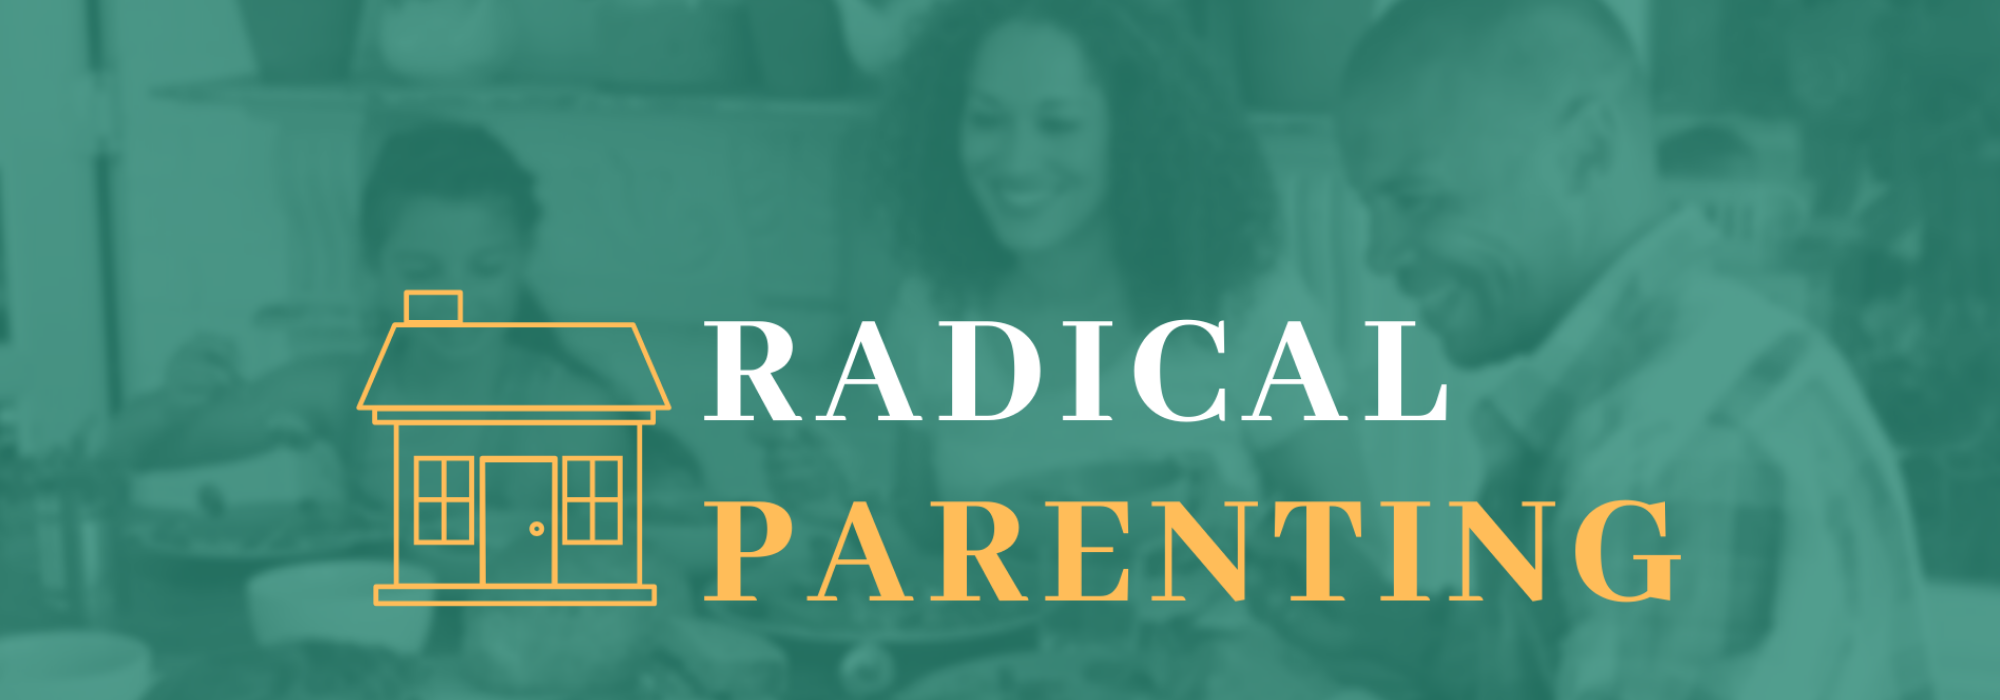 radical parenting conference